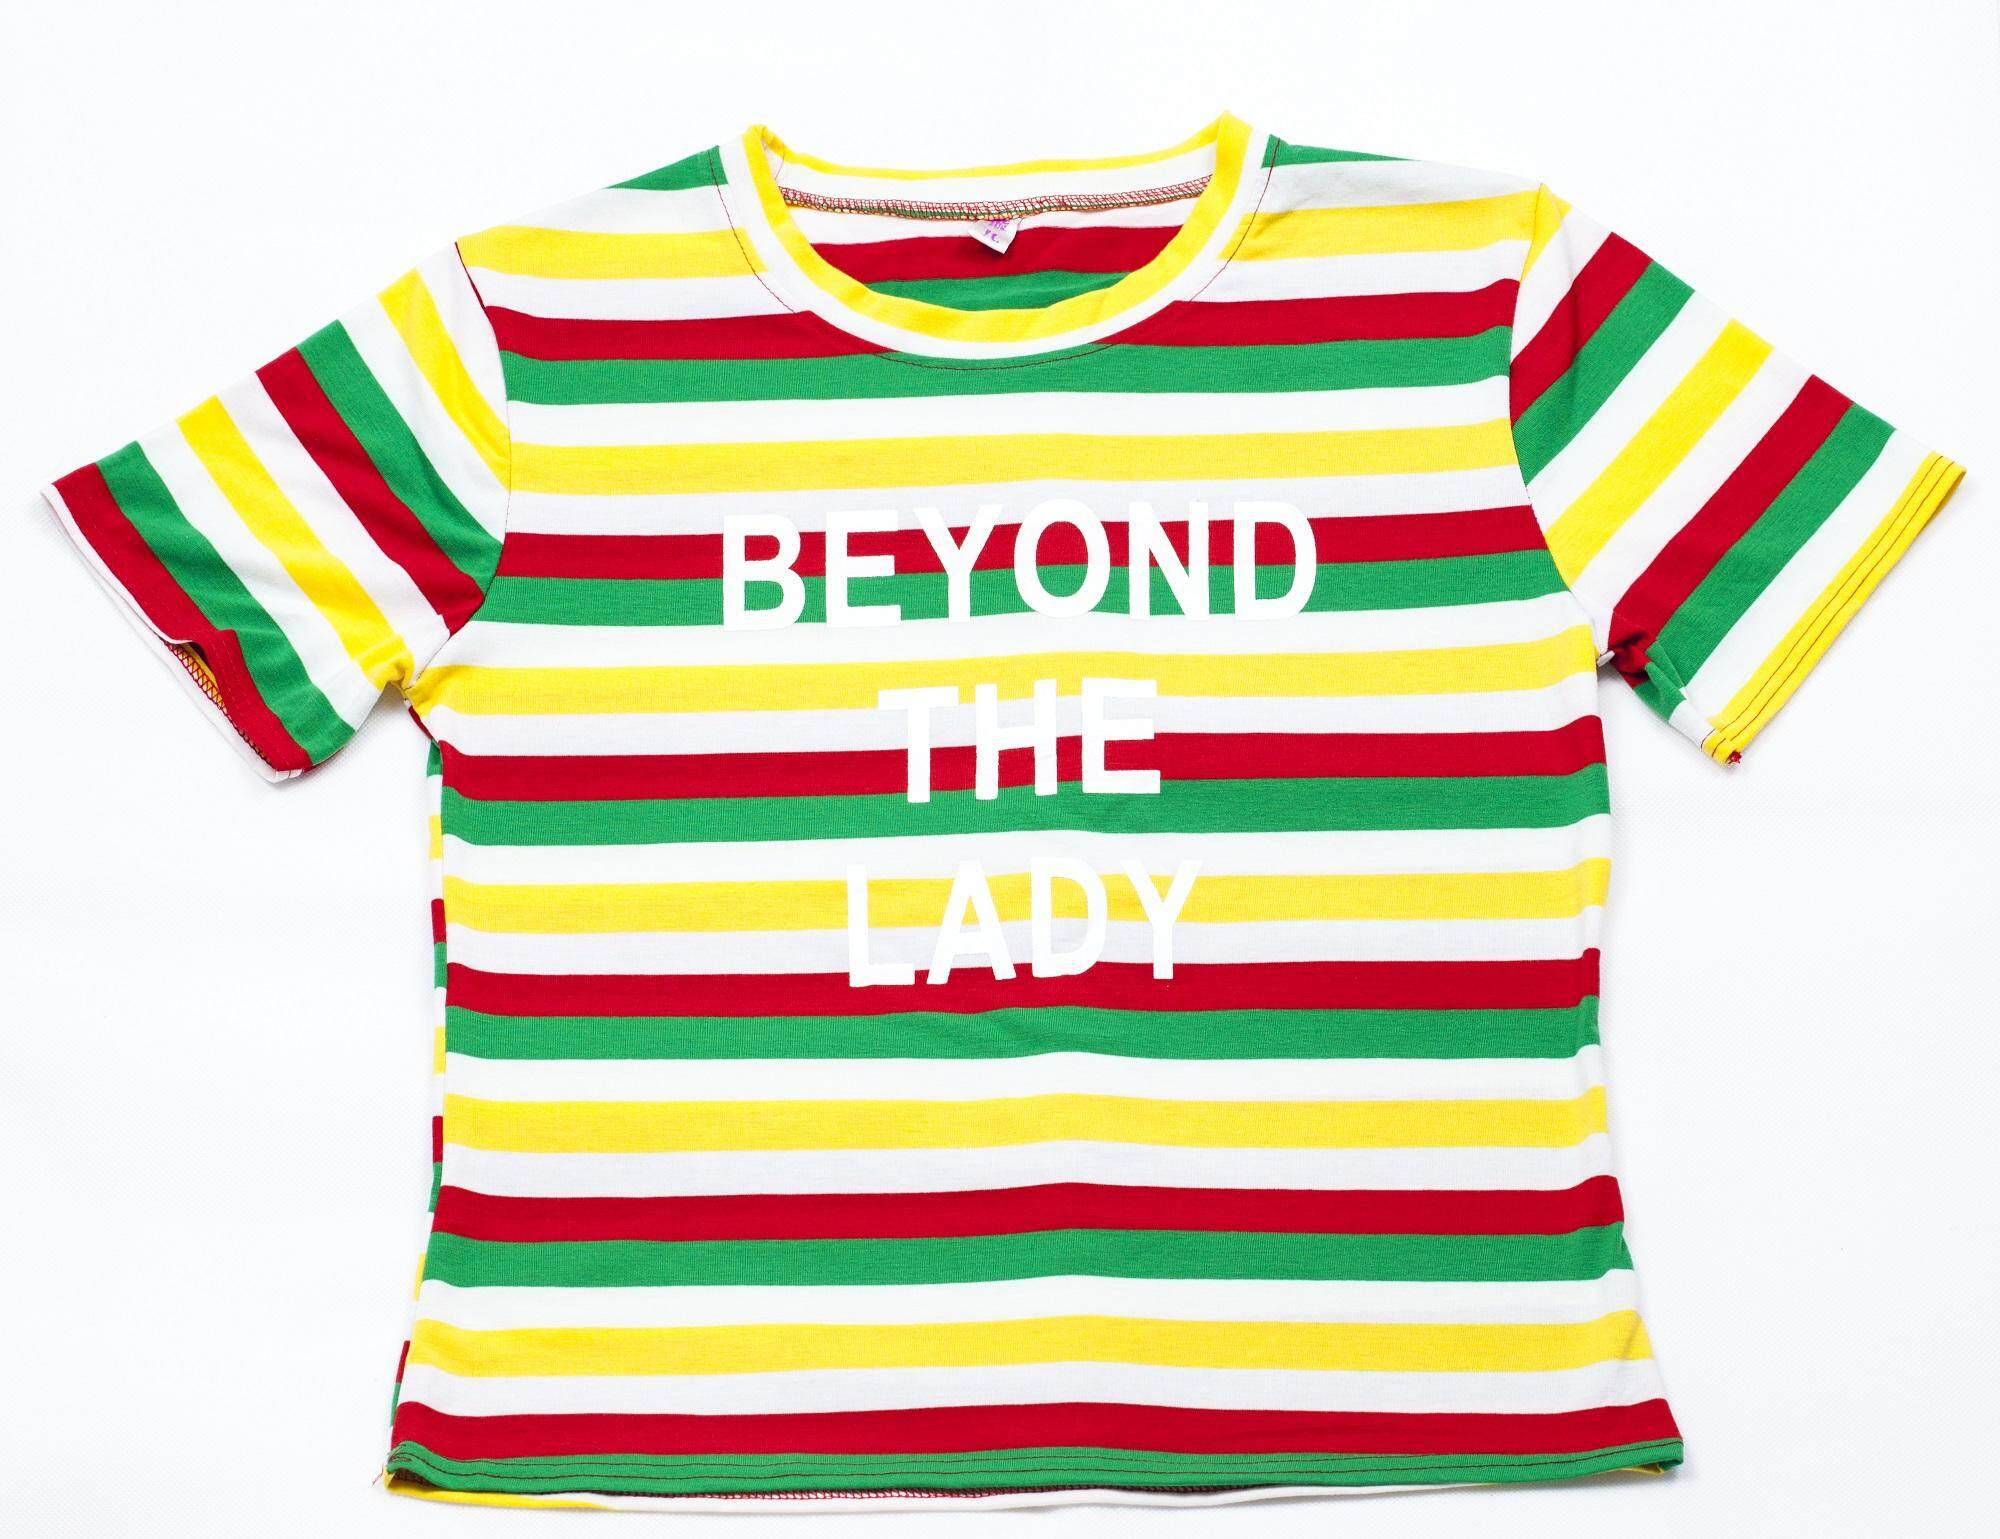 Dumdee Autumn Women Letter Printing T-shirts 2018 Casual Personality Rainbow T-Shirts Women Long Sleeve Tops